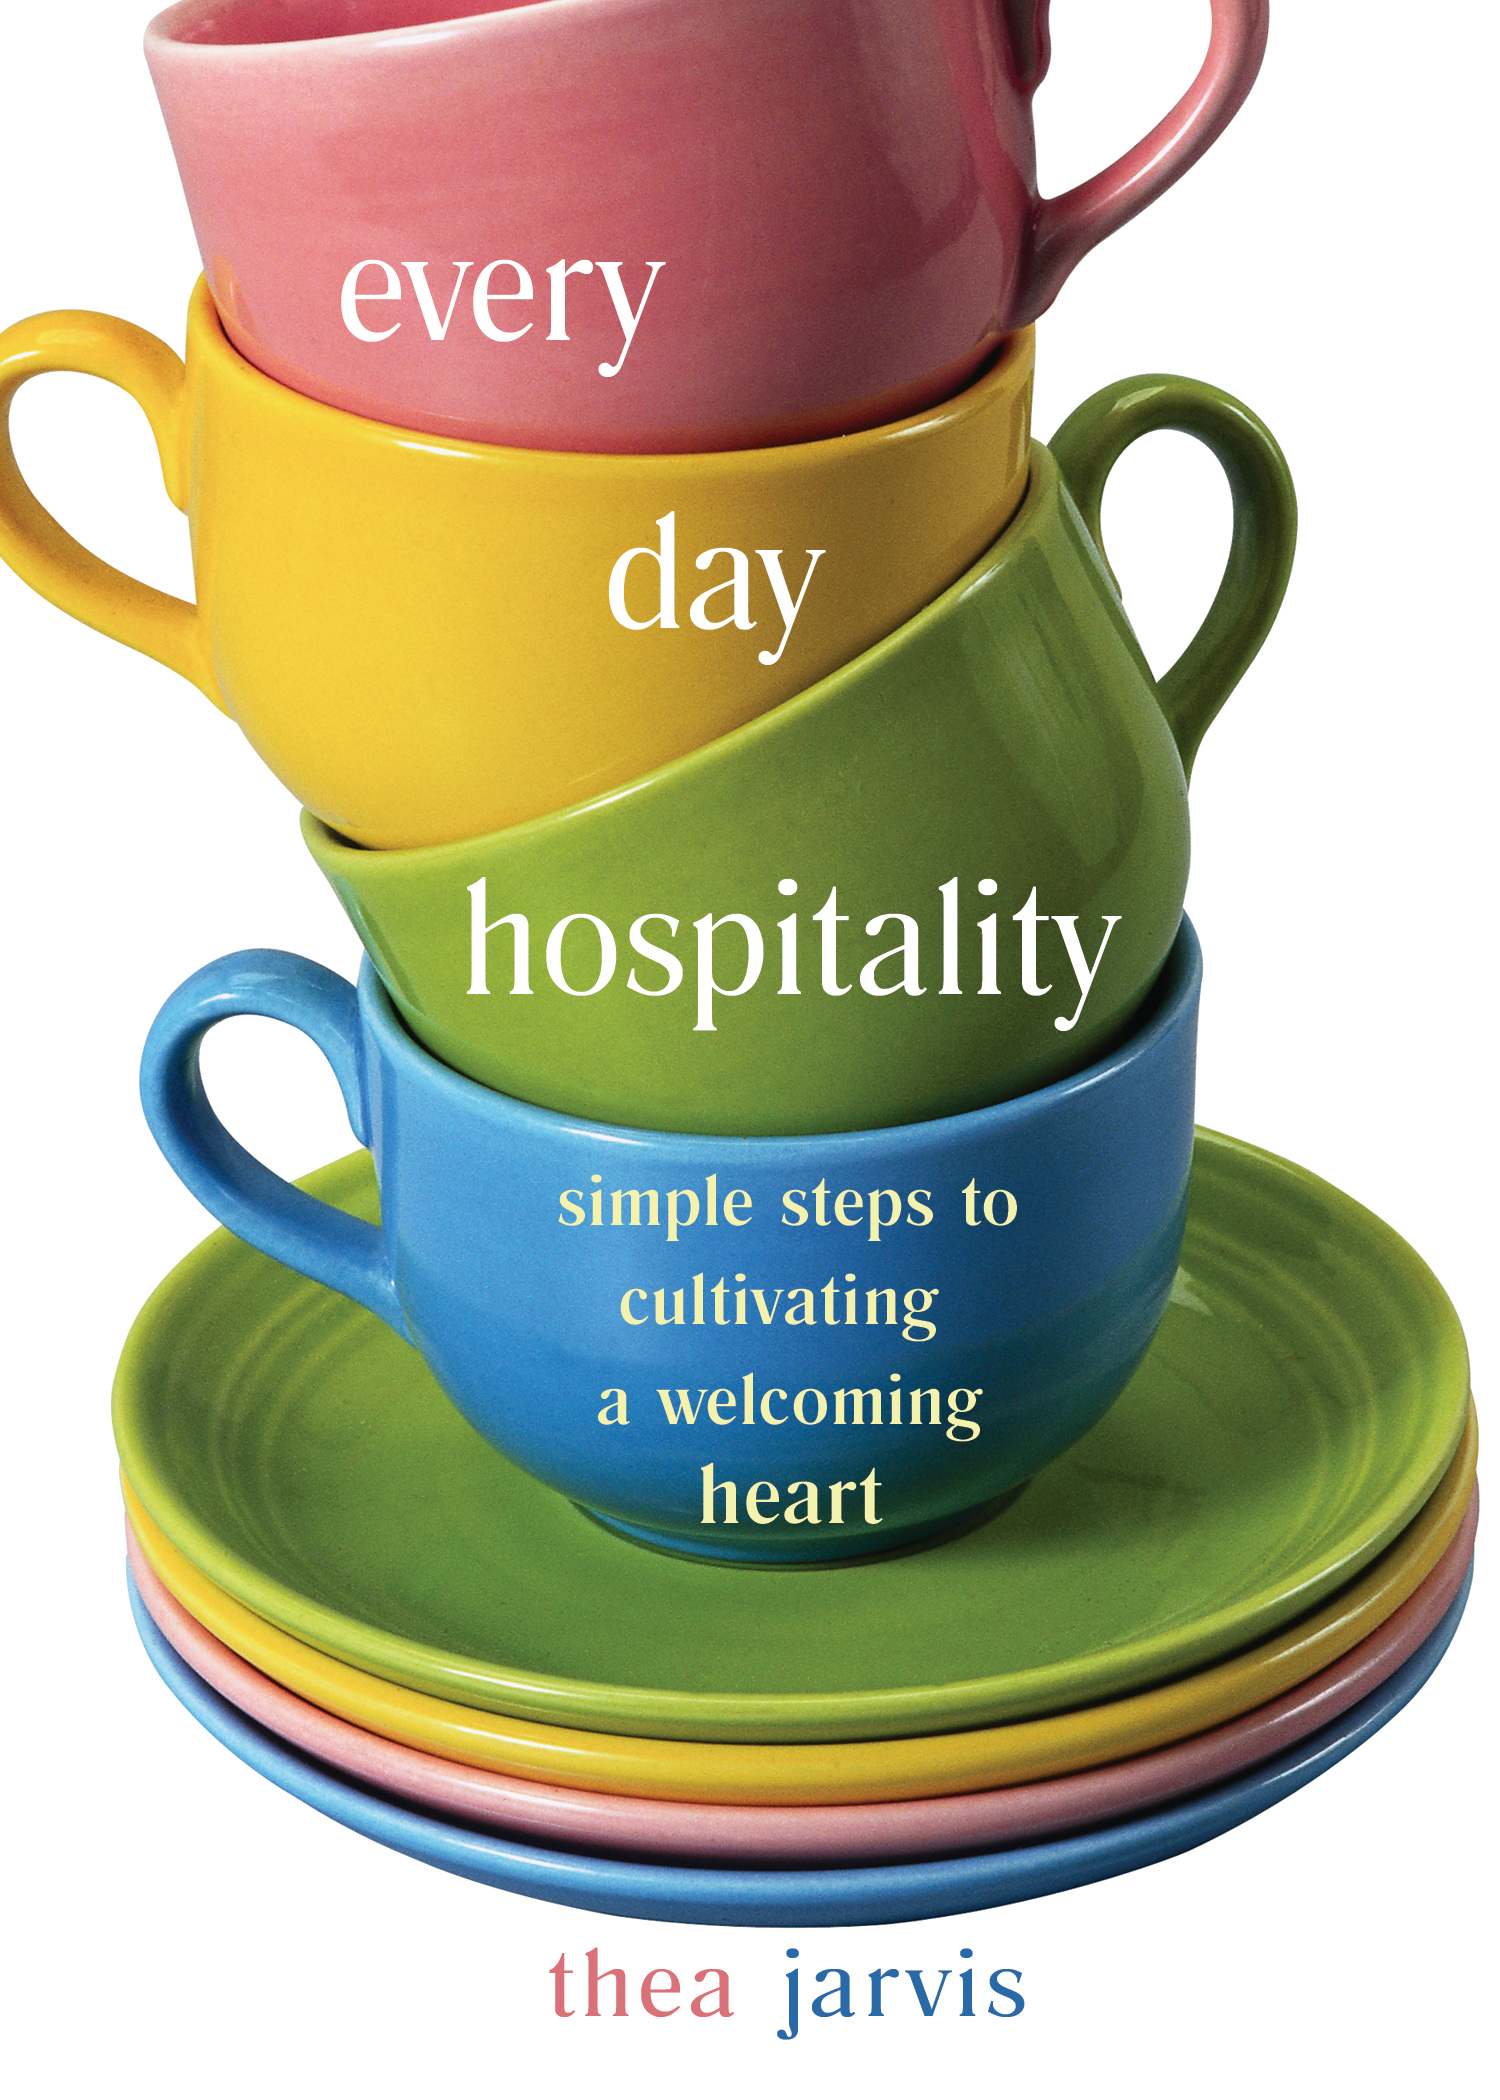 sc 1 st  Ave Maria Press & Everyday Hospitality | Ave Maria Press